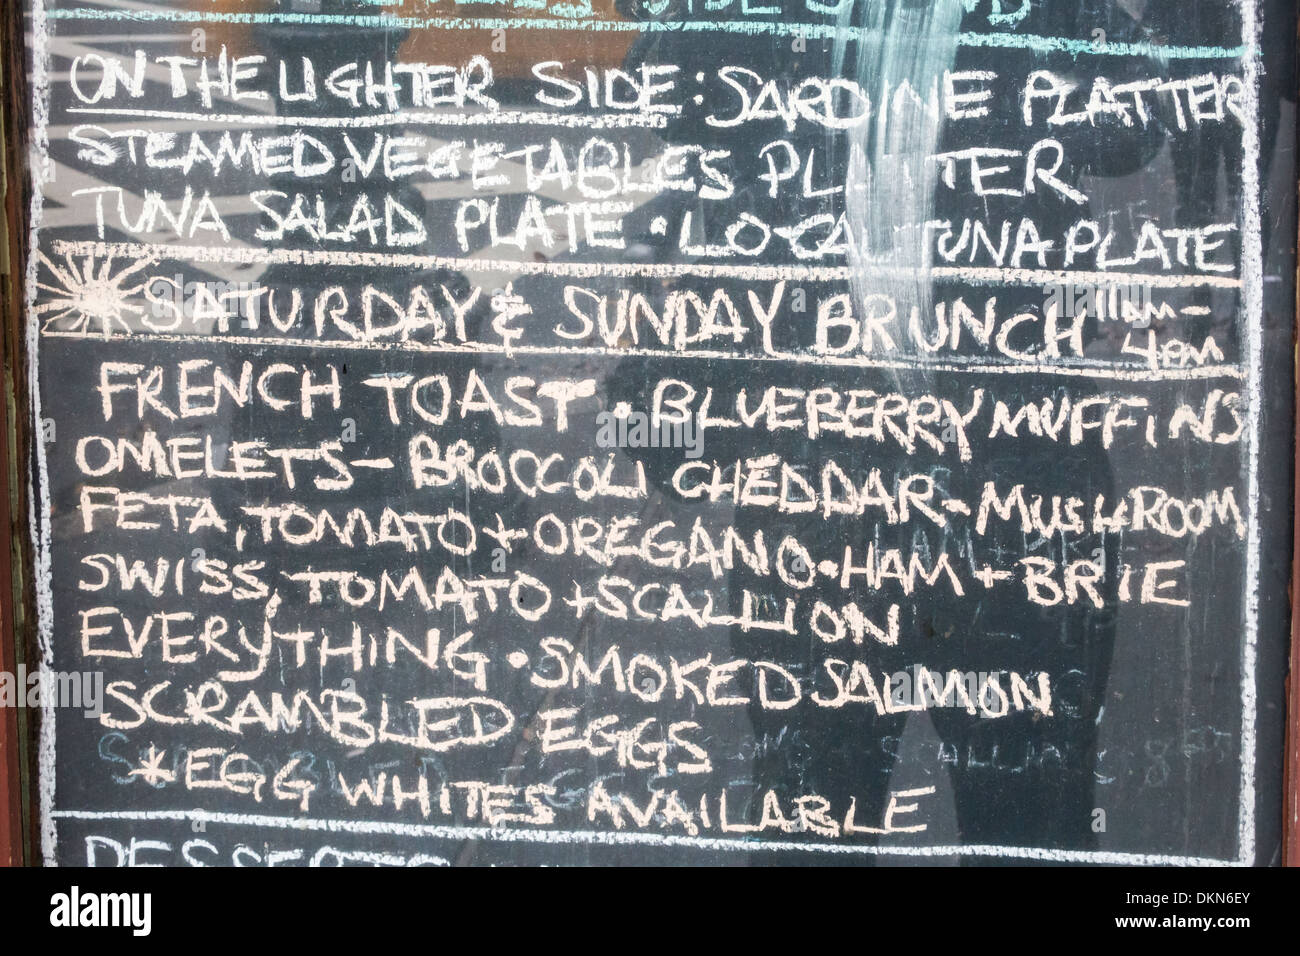 chalkboard menu outside a bar restaurant in soho, new york stock